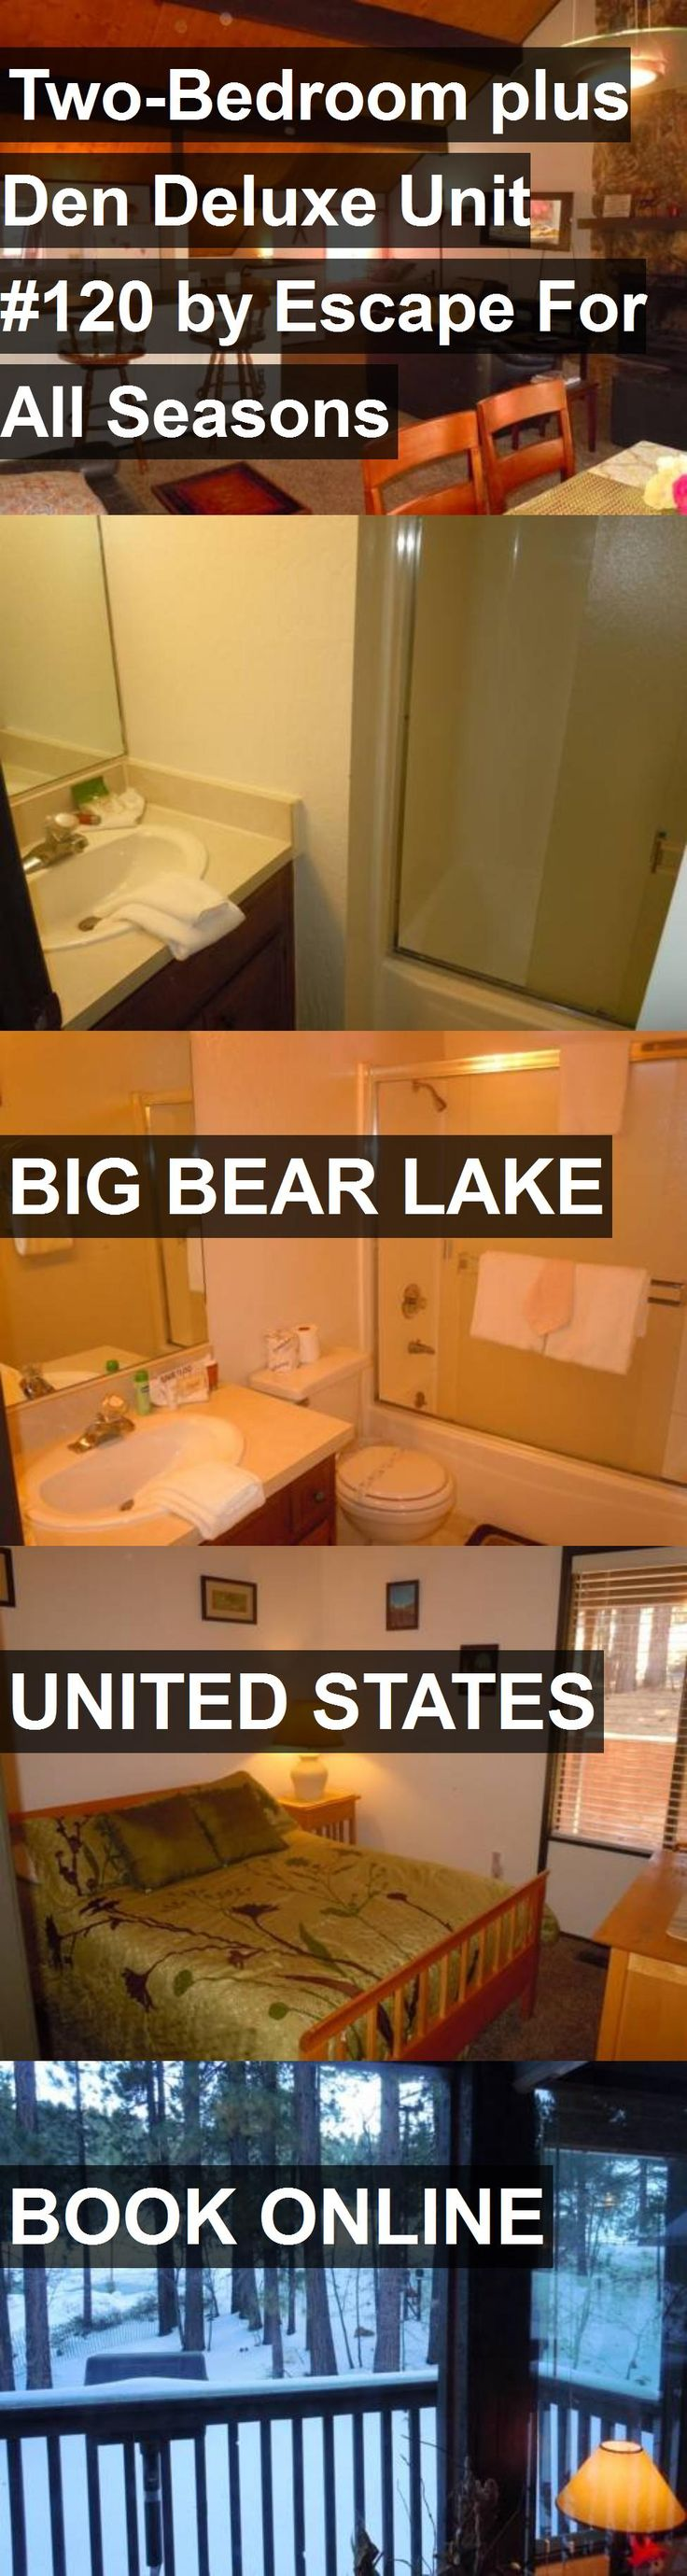 Hotel Two-Bedroom plus Den Deluxe Unit #120 by Escape For All Seasons in Big Bear Lake, United States. For more information, photos, reviews and best prices please follow the link. #UnitedStates #BigBearLake #travel #vacation #hotel